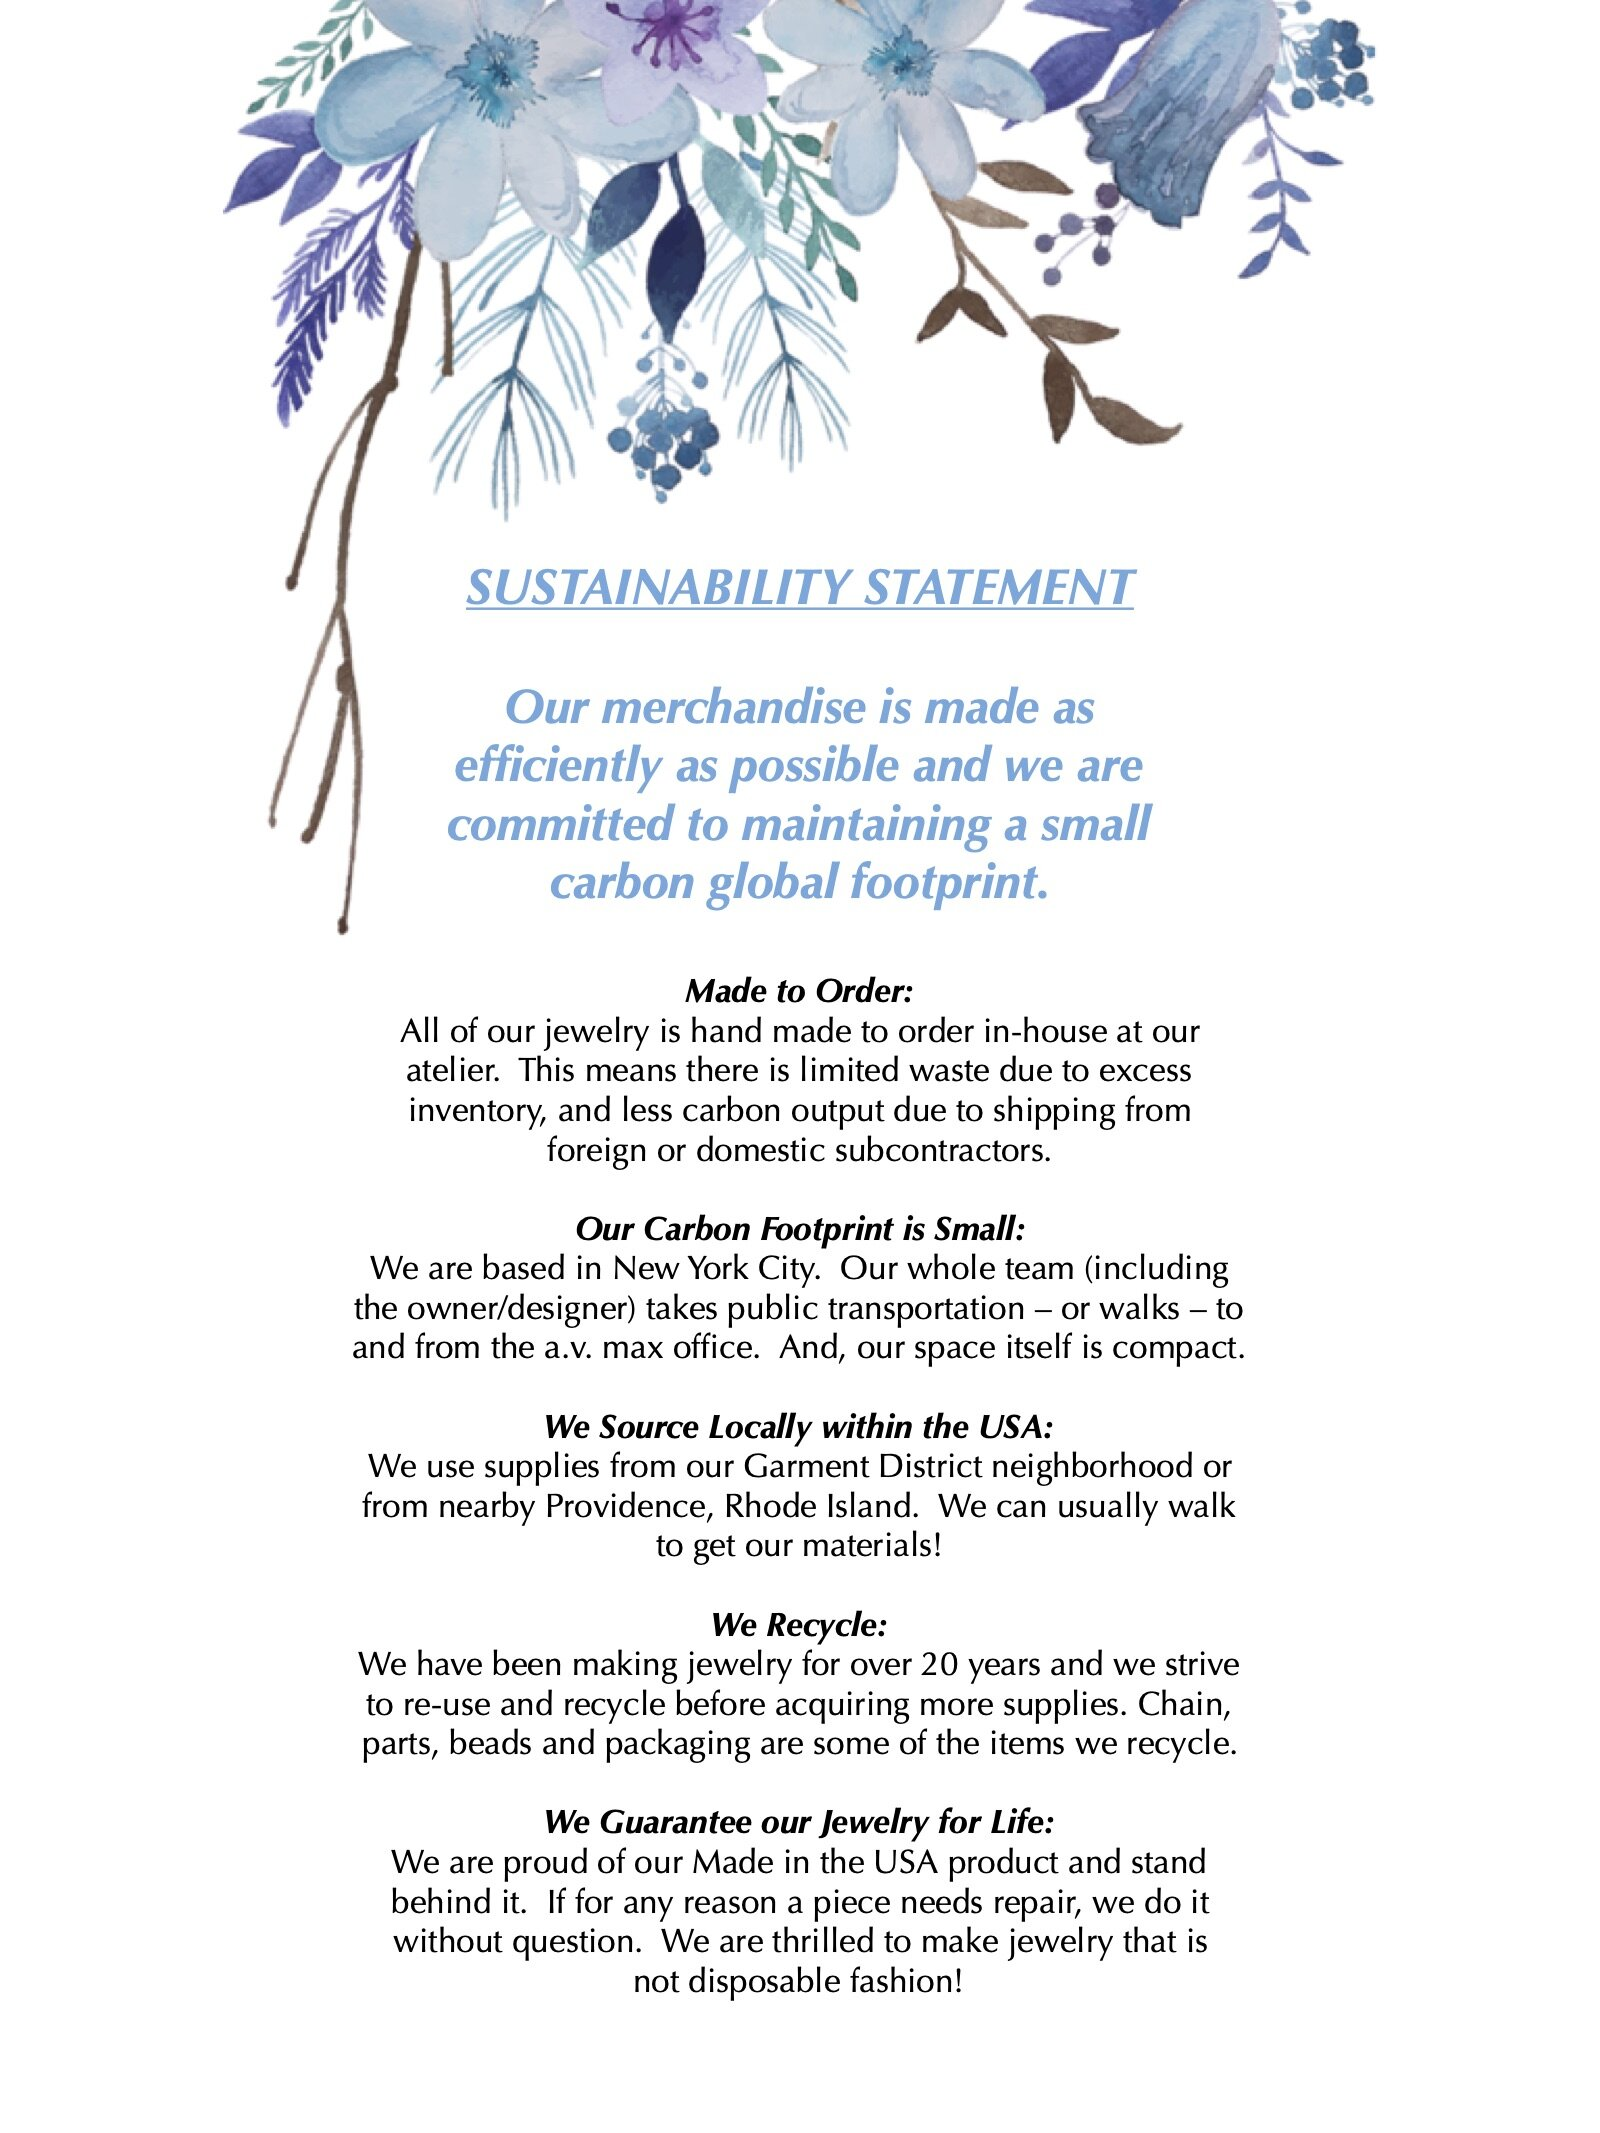 sustainability statement husk.jpg